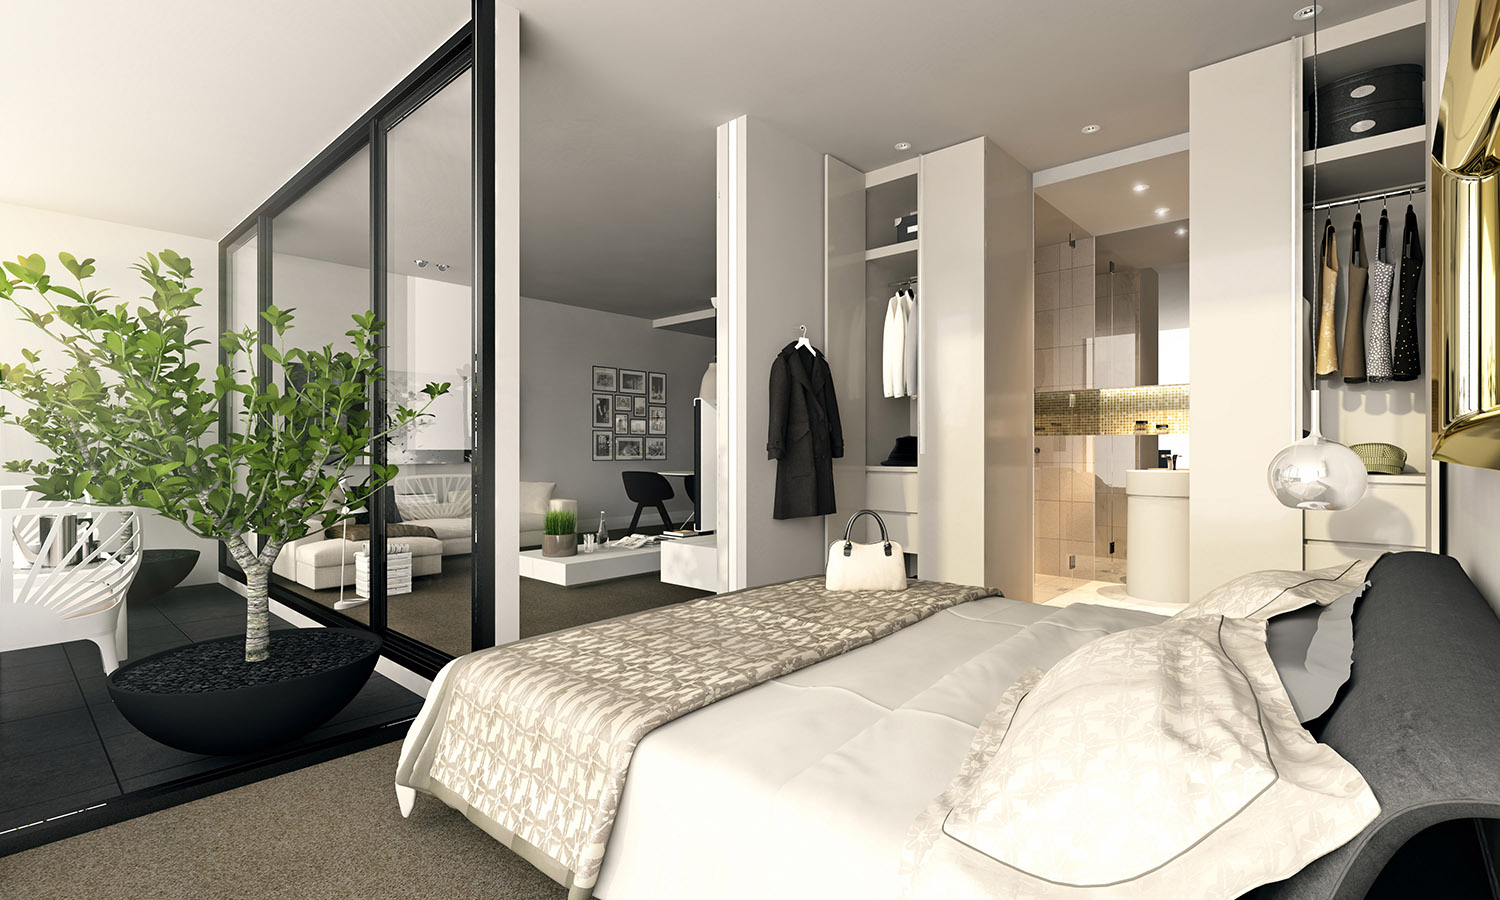 Studio apartment interiors inspiration for 5 bedroom apartments